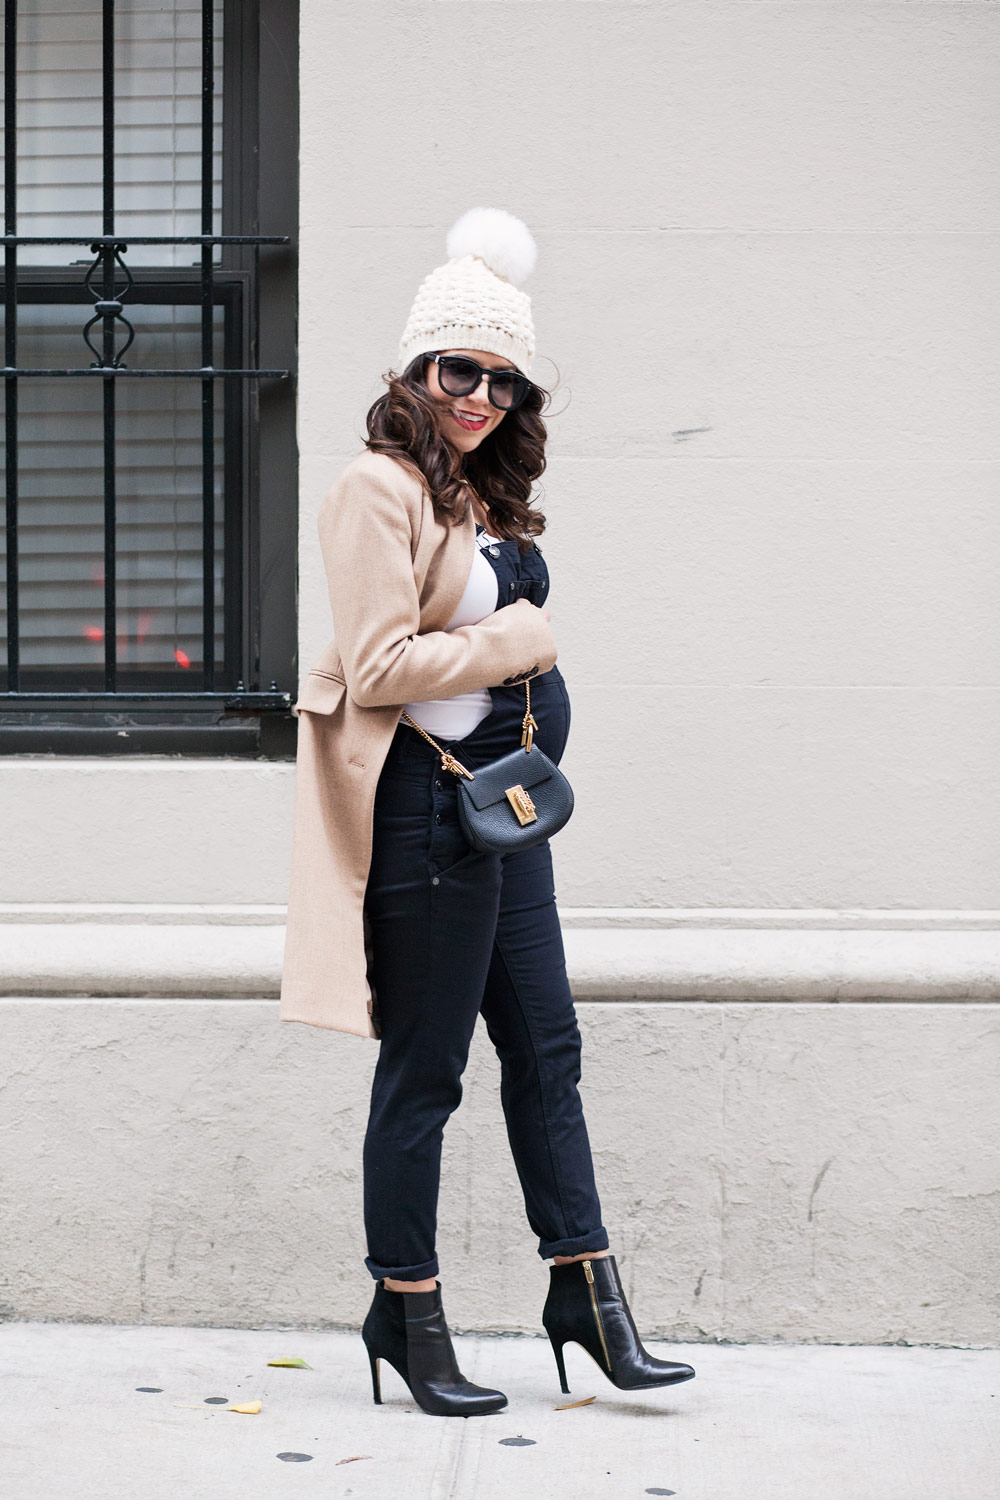 maternity-overalls-what-to-wear-when-expecting-nyc-expecting-layering-while-pregnant-maternity-fashion-dress-the-bump-overalls-corproate-catwalk-5